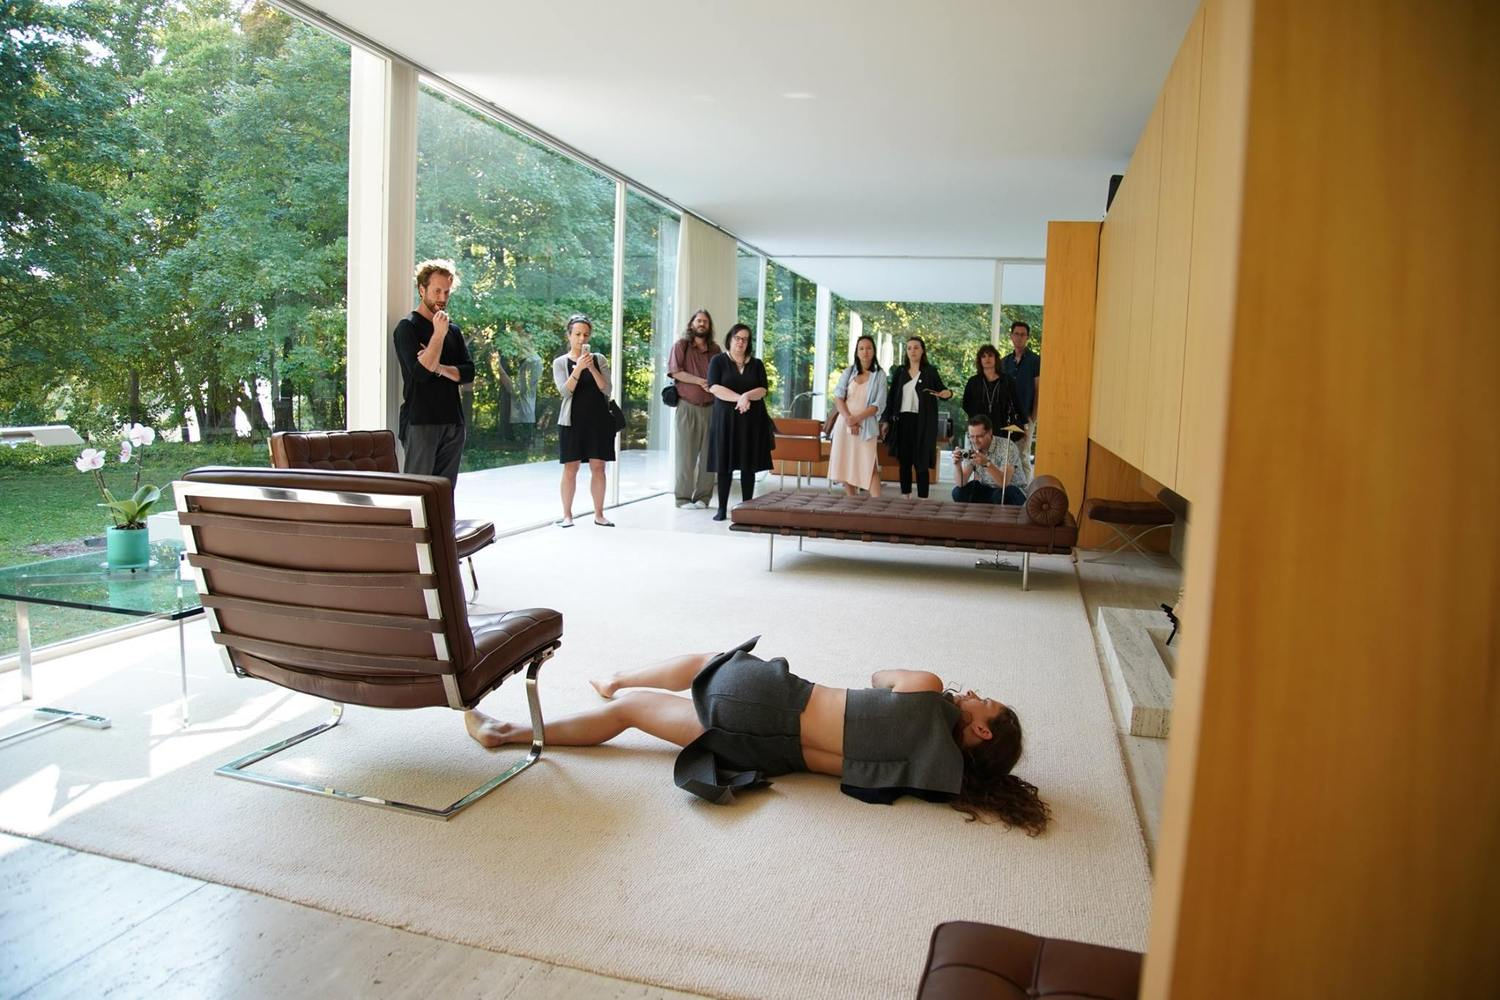 Choreographed performance at farnsworth house explores queer space in the work of mies van der rohe